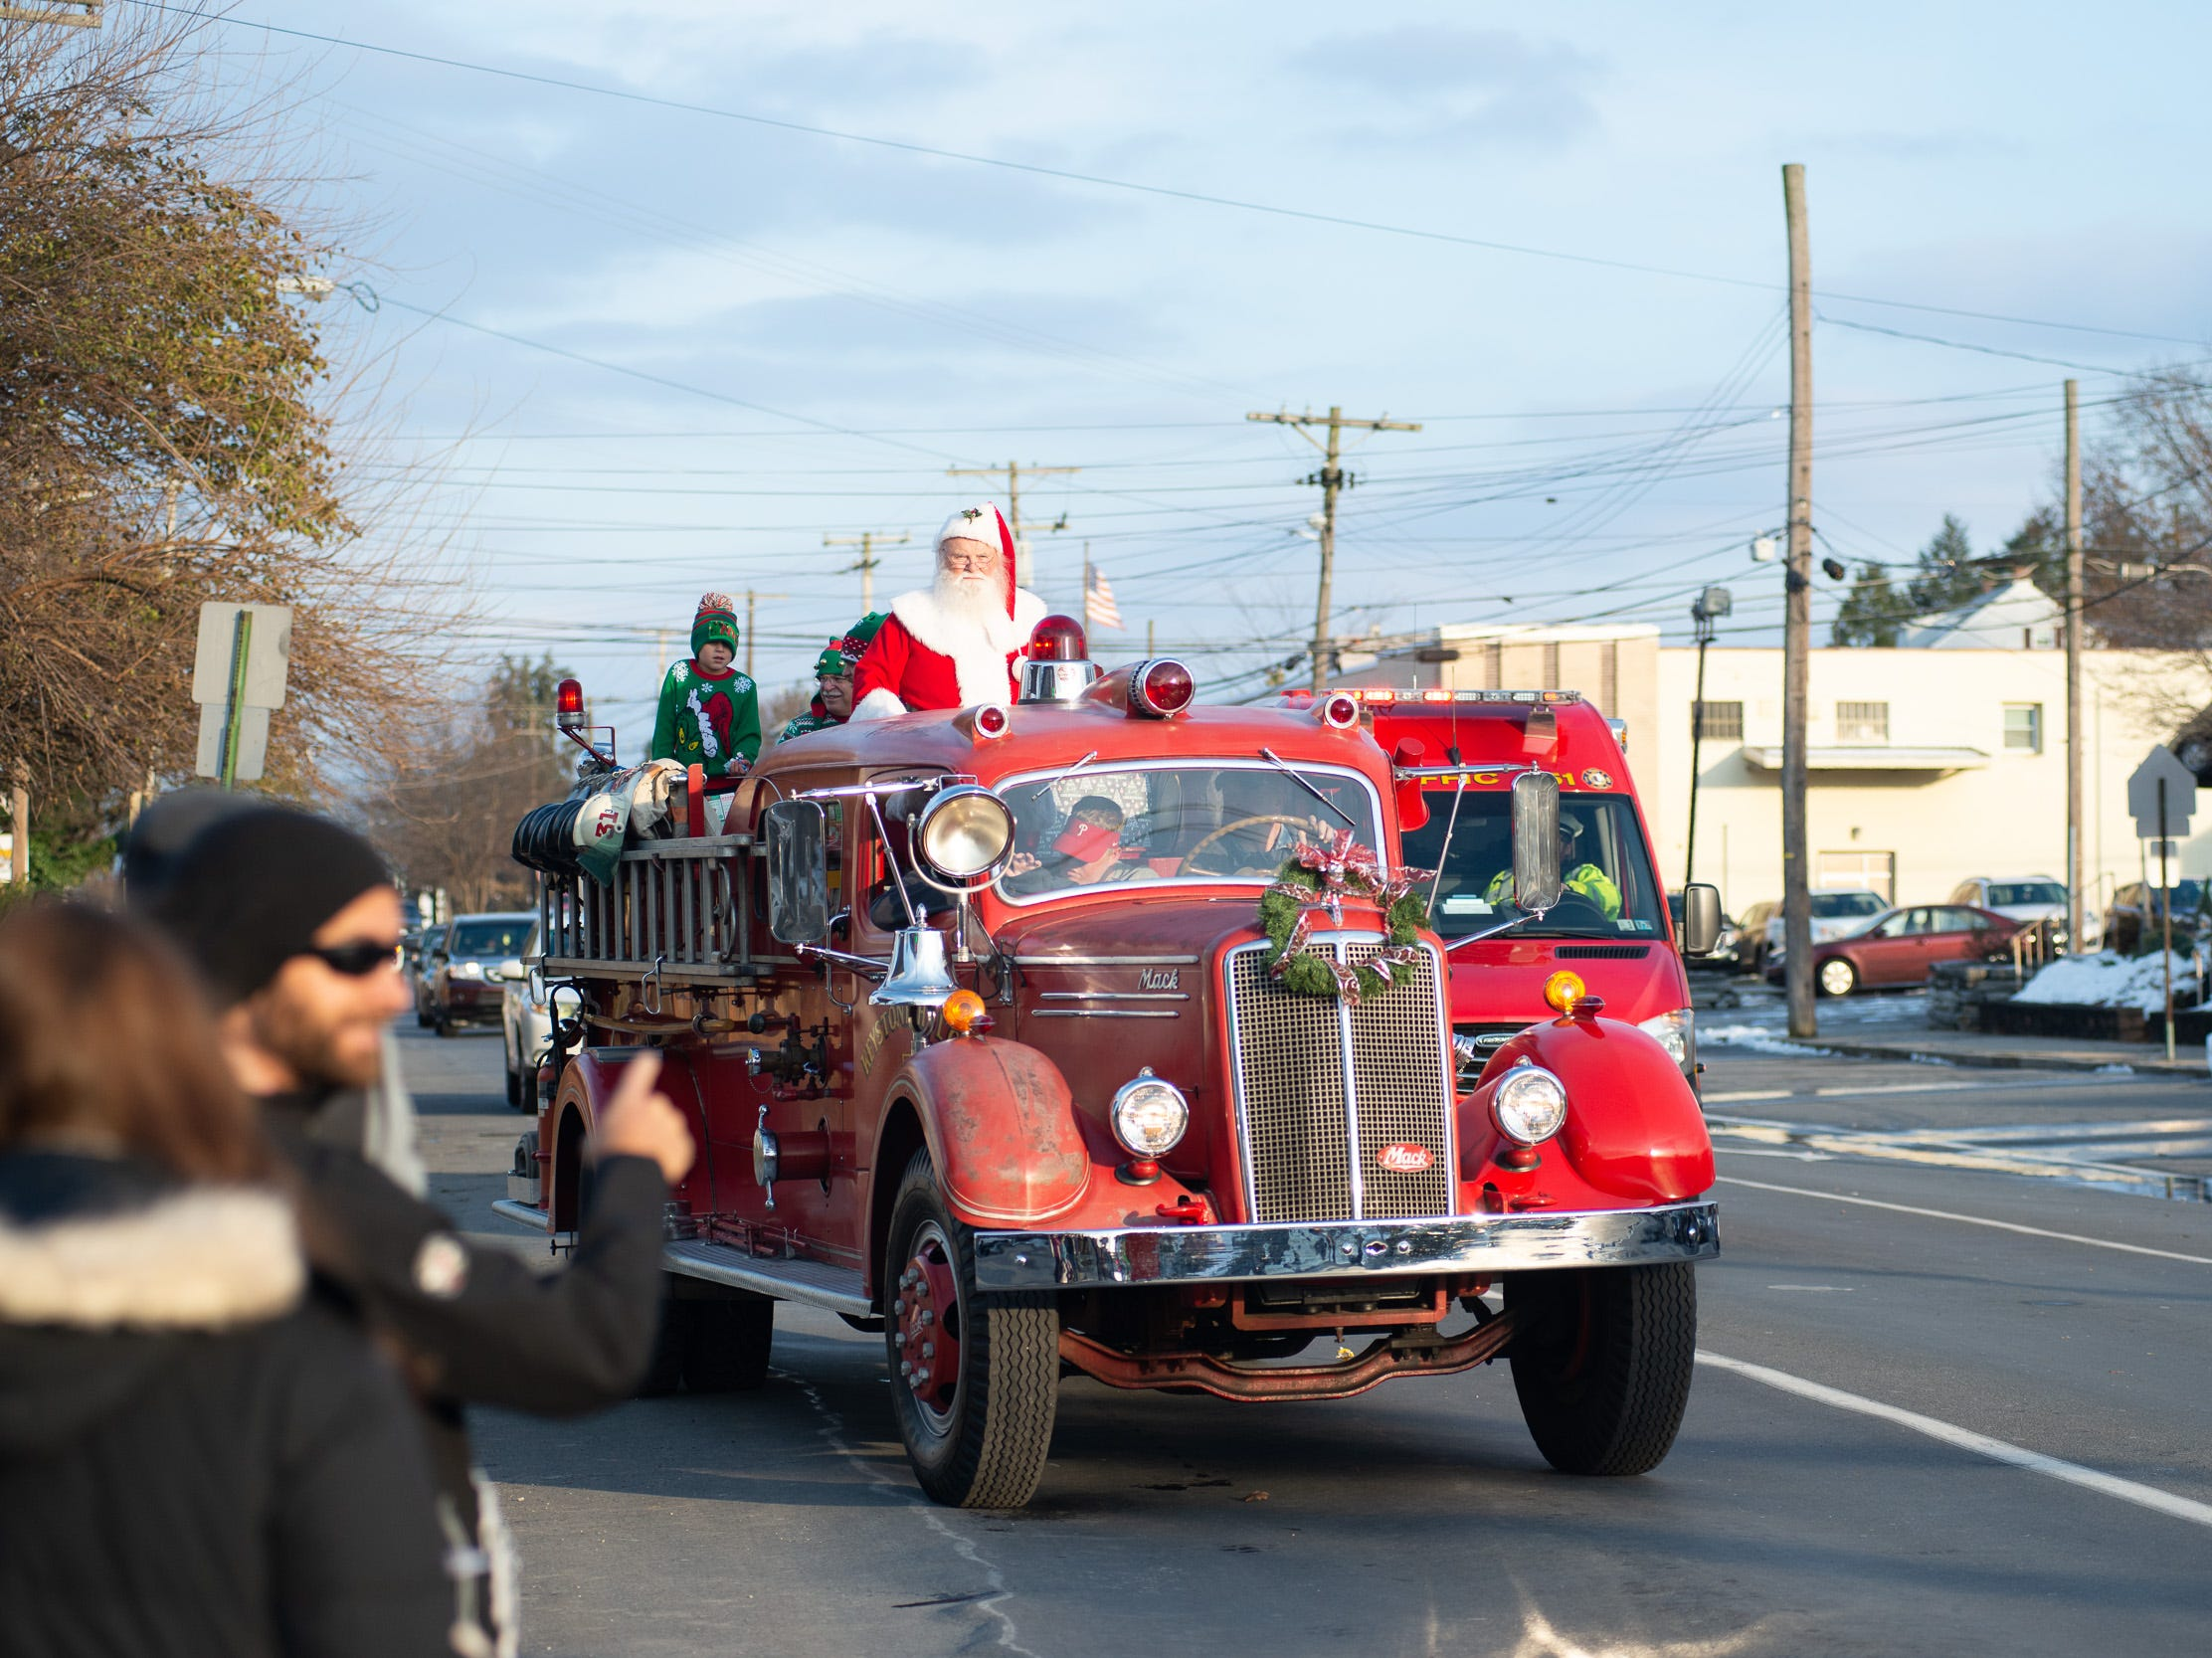 The 2018 Lebanon Holiday Parade was held Saturday afternoon in downtown Lebanon. A huge crowd lines the streets on Nov. 17, 2018 to observe the festivities.